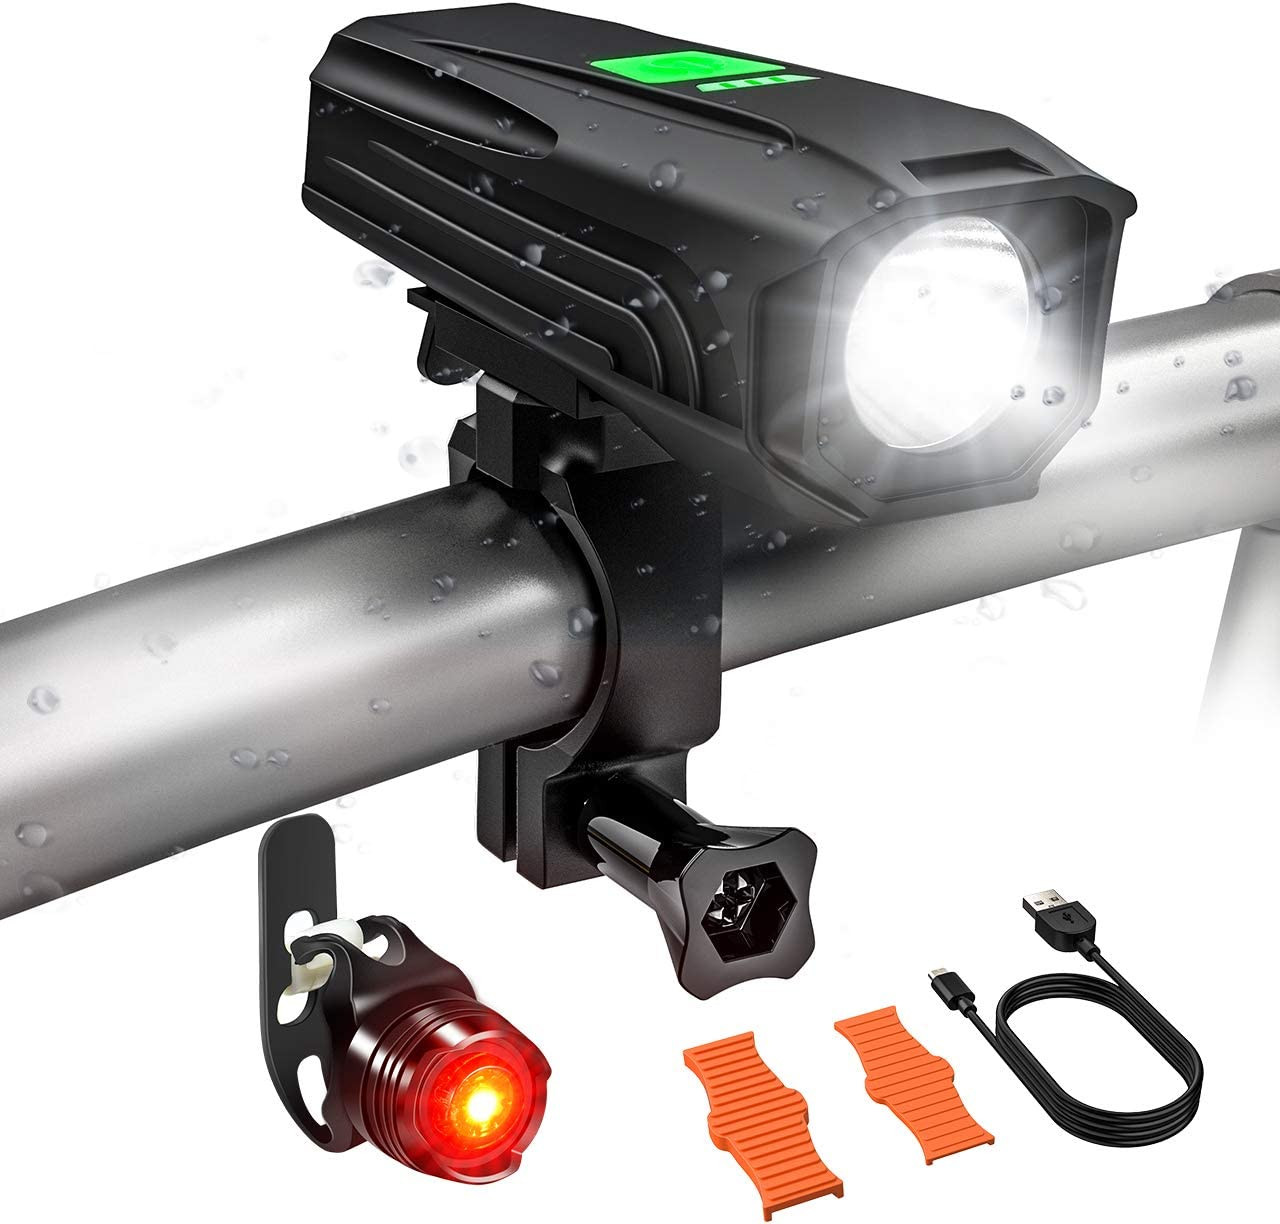 USB Rechargeable Bike Light Set, Runtime 5 Hours 450 Lumens LED Super Bright Front Light with Free Tail Light, Waterproof, 5 Light Mode and Easy to Install Fits All Bicycles